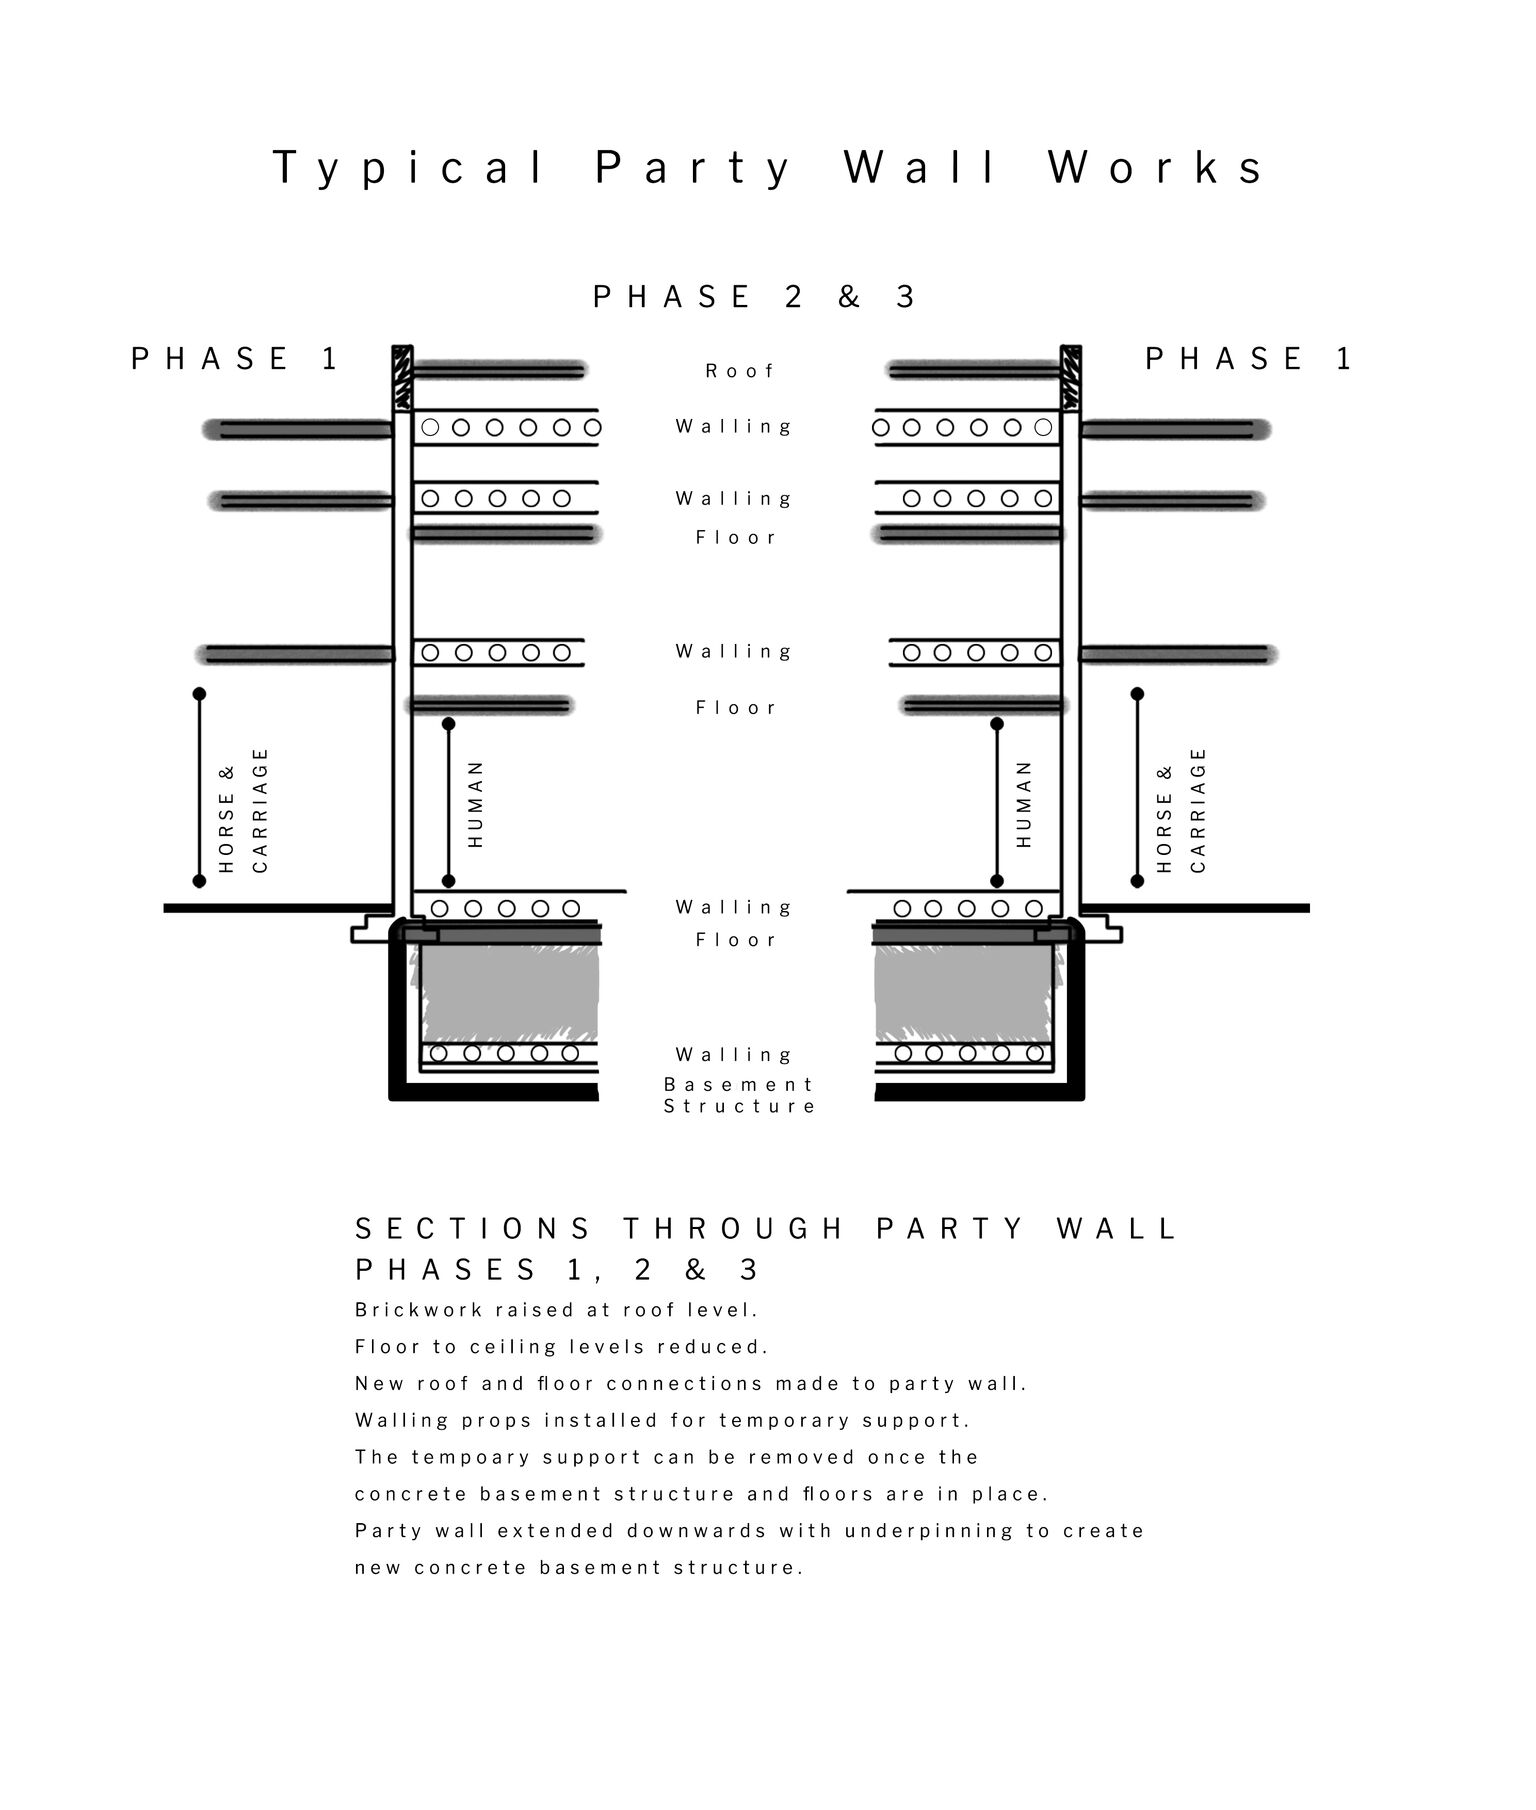 Fig 51B/1 – Typical Party Wall Works Diagram